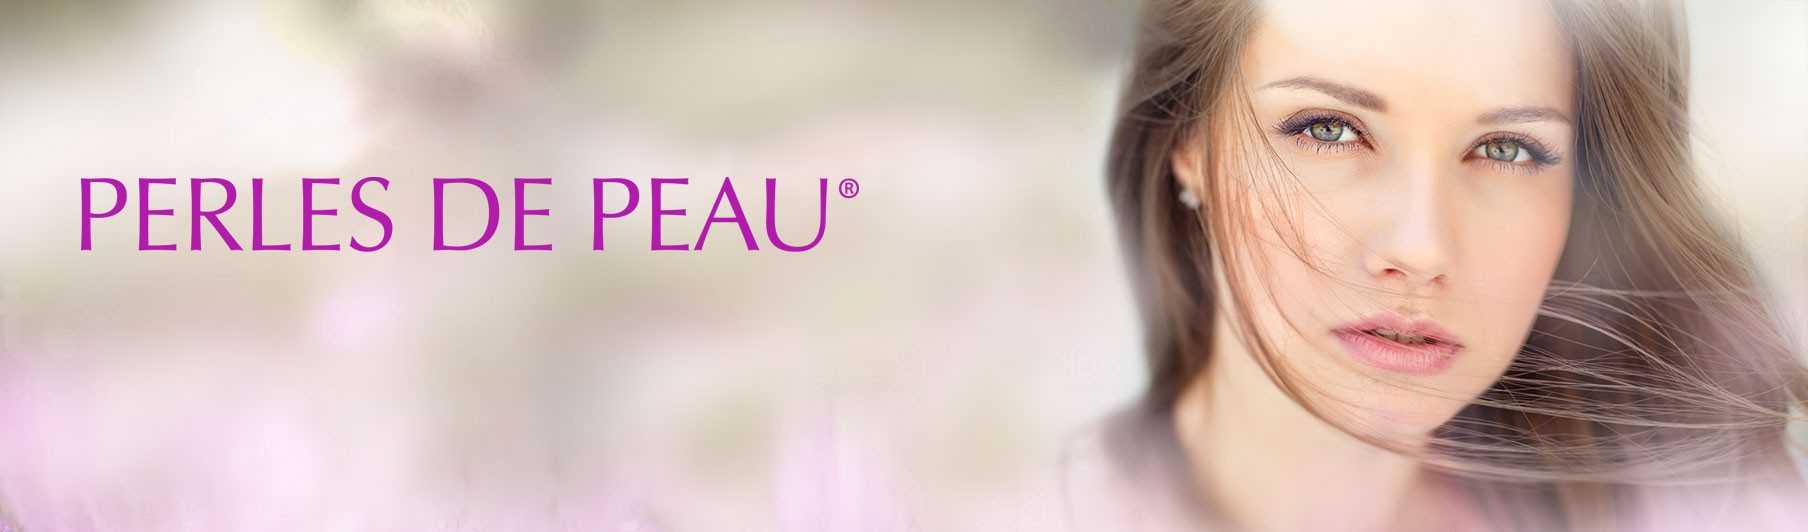 Perles de Peau®, expertise beyond Beauty !